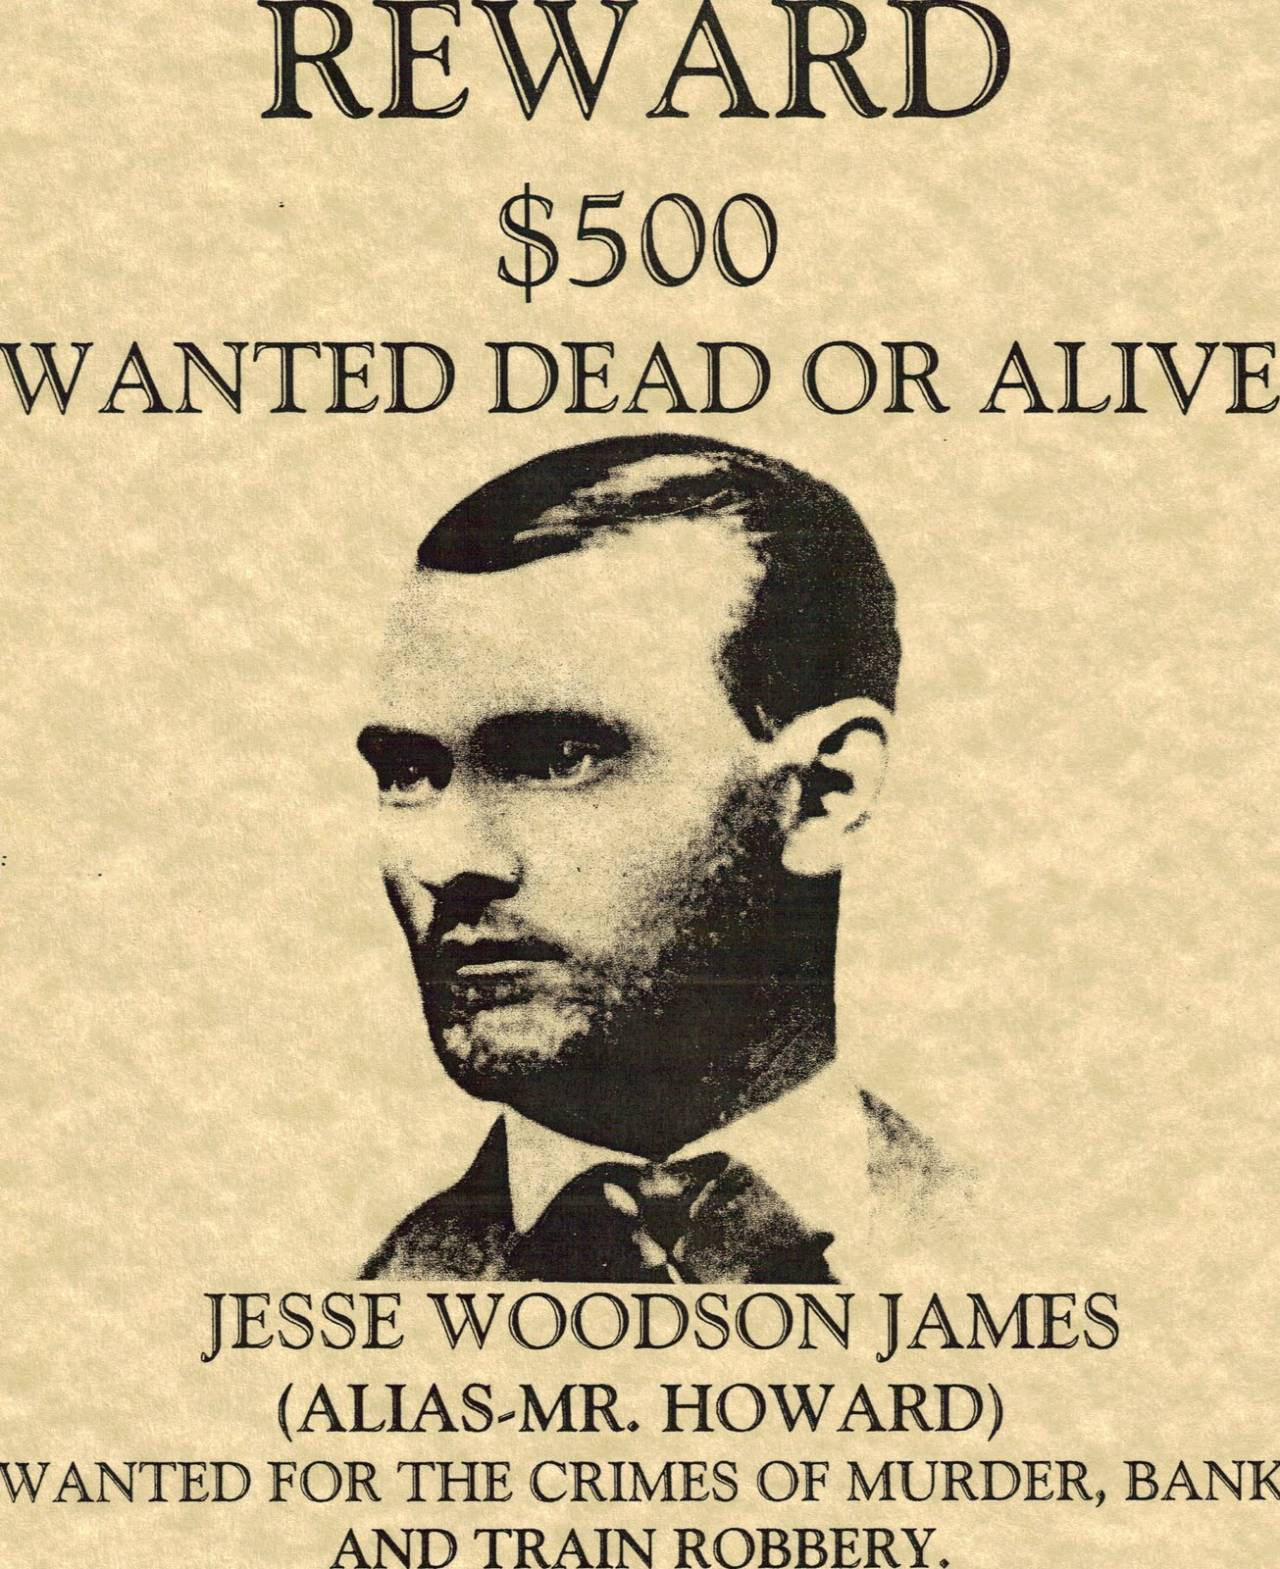 the life and times of criminal jesse woodson The court in andres noted that the decision of congress at the end of the 19th century to replace mandatory death sentences with discretionary jury sentencing for federal capital crimes was prompted by [d]issatisfaction over the harshness and antiquity of the federal criminal laws.